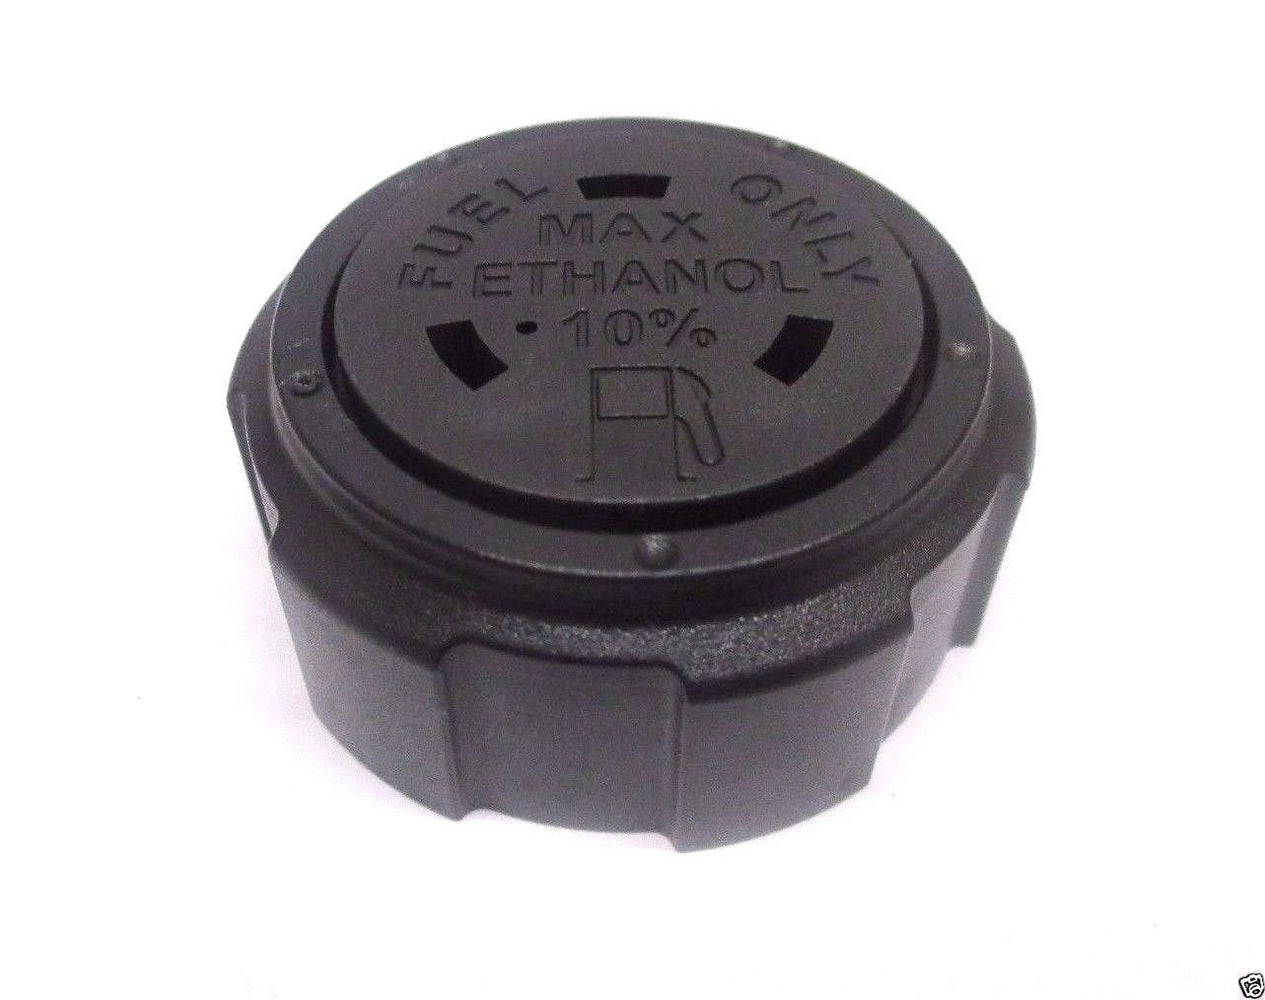 Genuine MTD 791-182271 Fuel Gas Cap 43mm Fits Yard Machines YardMan Bolens Ryobi